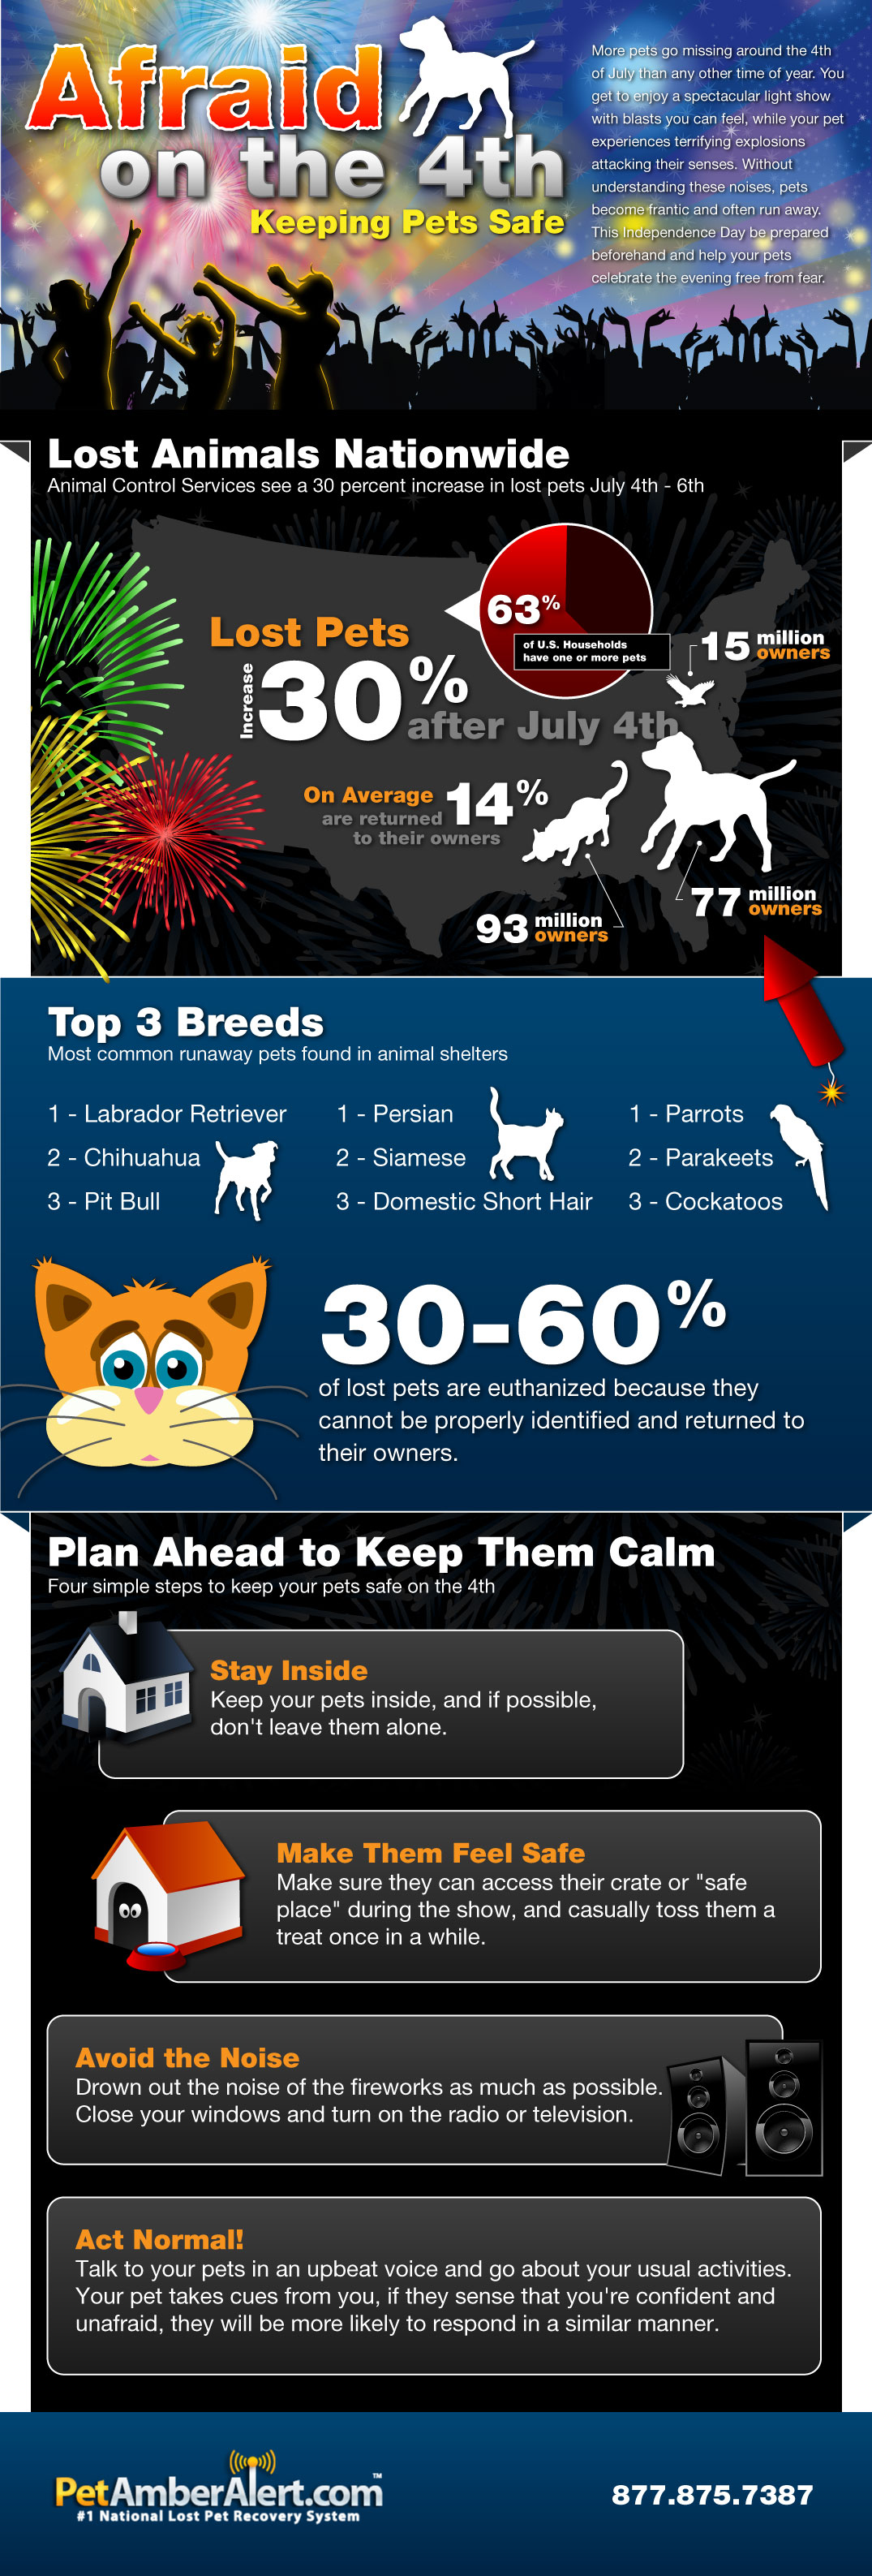 lost pets infographic